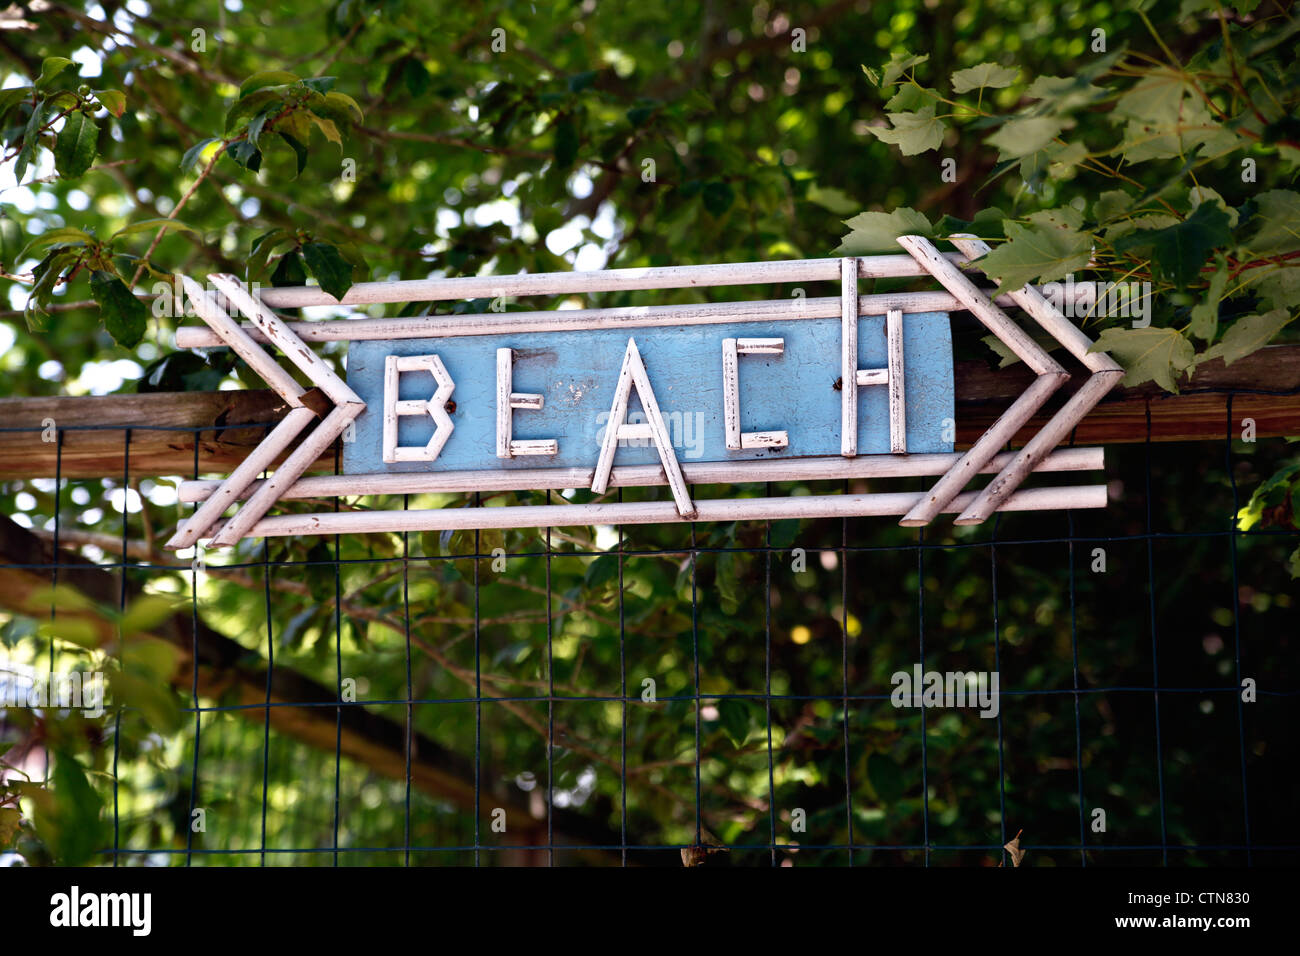 Wooden Sign With Small Wooden Dowel Lettering, Pointing to a Beach - Stock Image